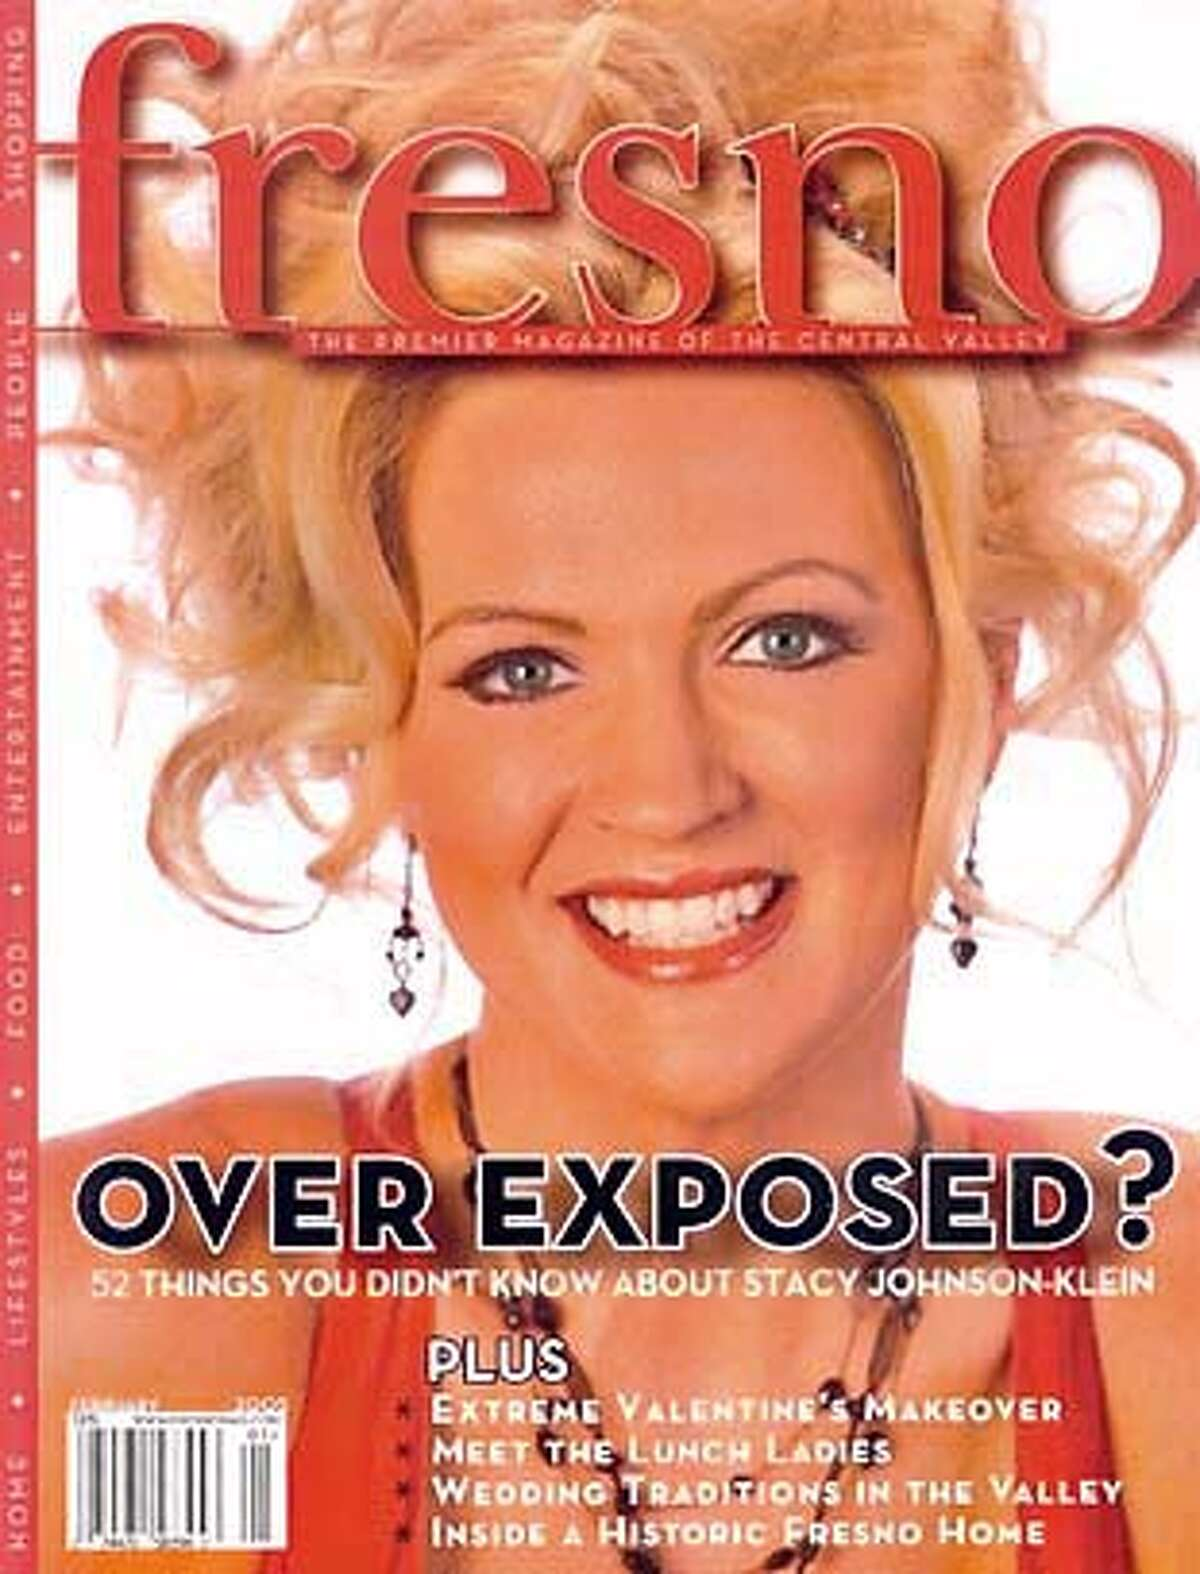 The cover of the January 2005 Fresno magazine, featuring a photo of California State University, Fresno Women's basketball coach Stacy Johnson-Klein, is shown in this scanned image.